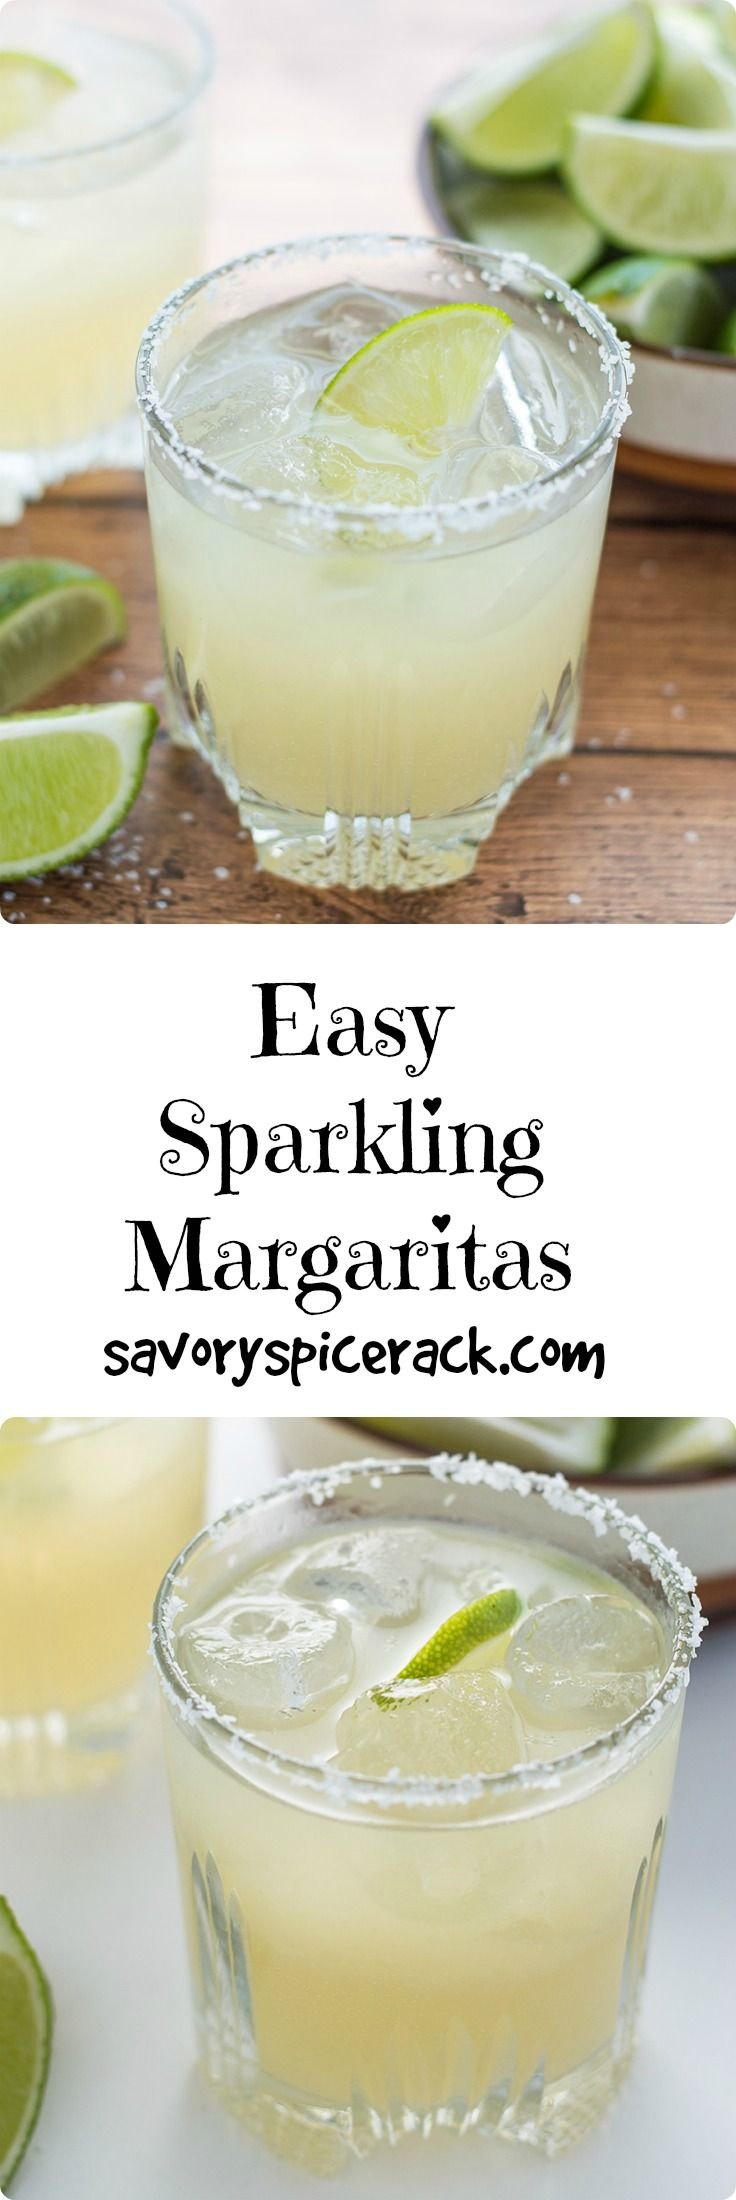 ... Mayo Drinks on Pinterest   Simple syrup, Tequila drinks and Margaritas